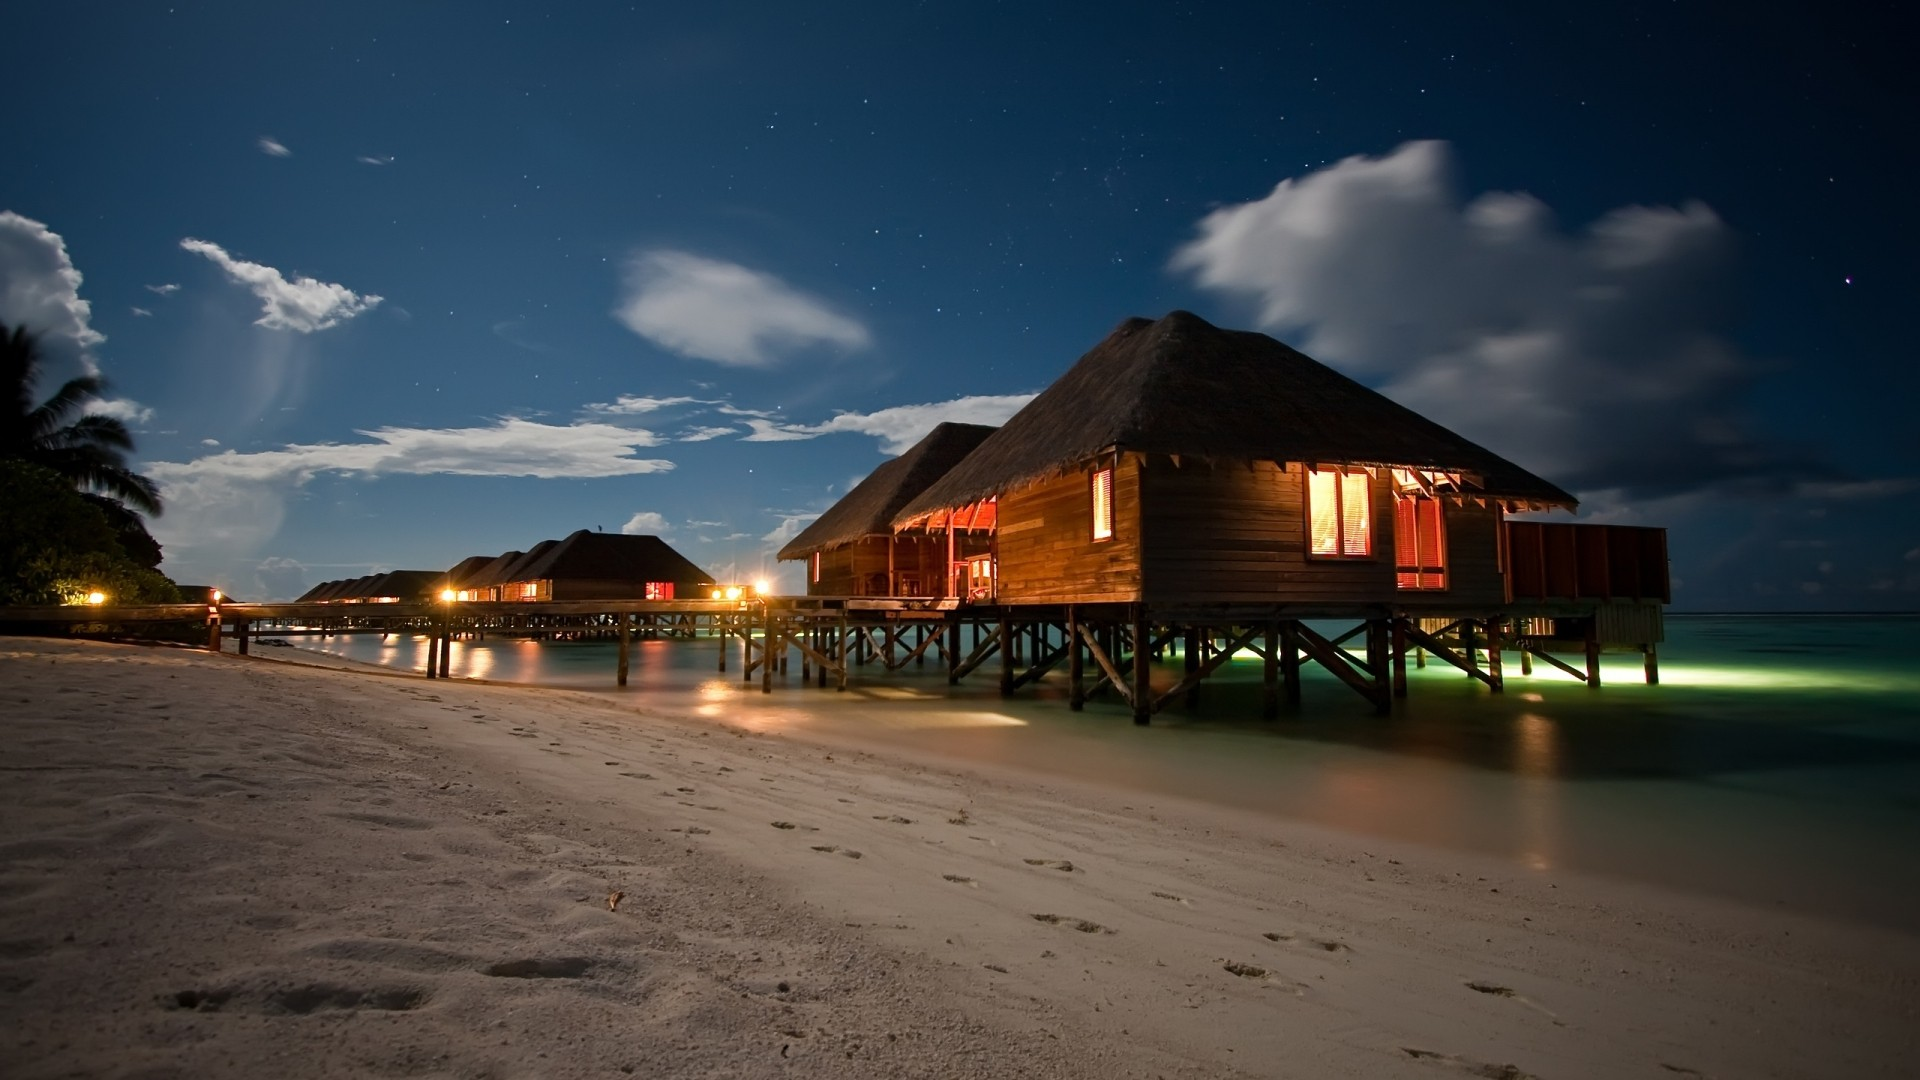 1920x1080 beach houses at night desktop pc and mac wallpaper